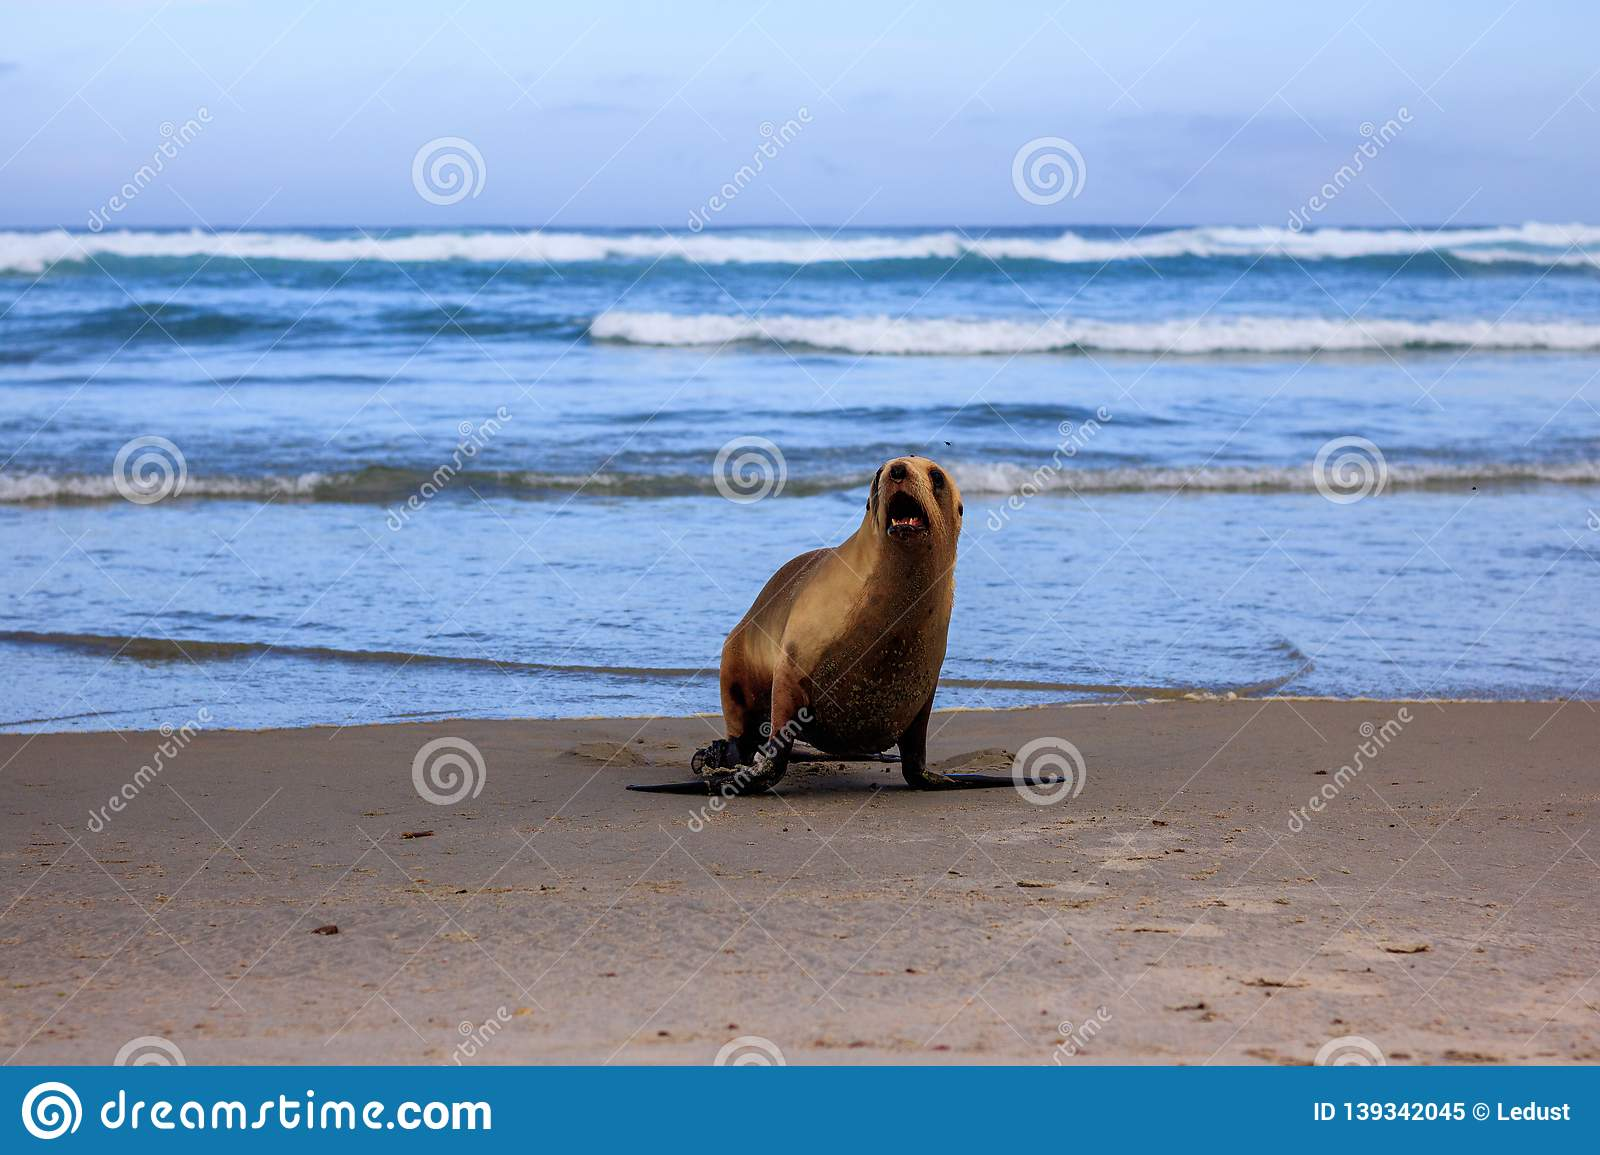 Sea lion comming out of the ocean at Allans beach